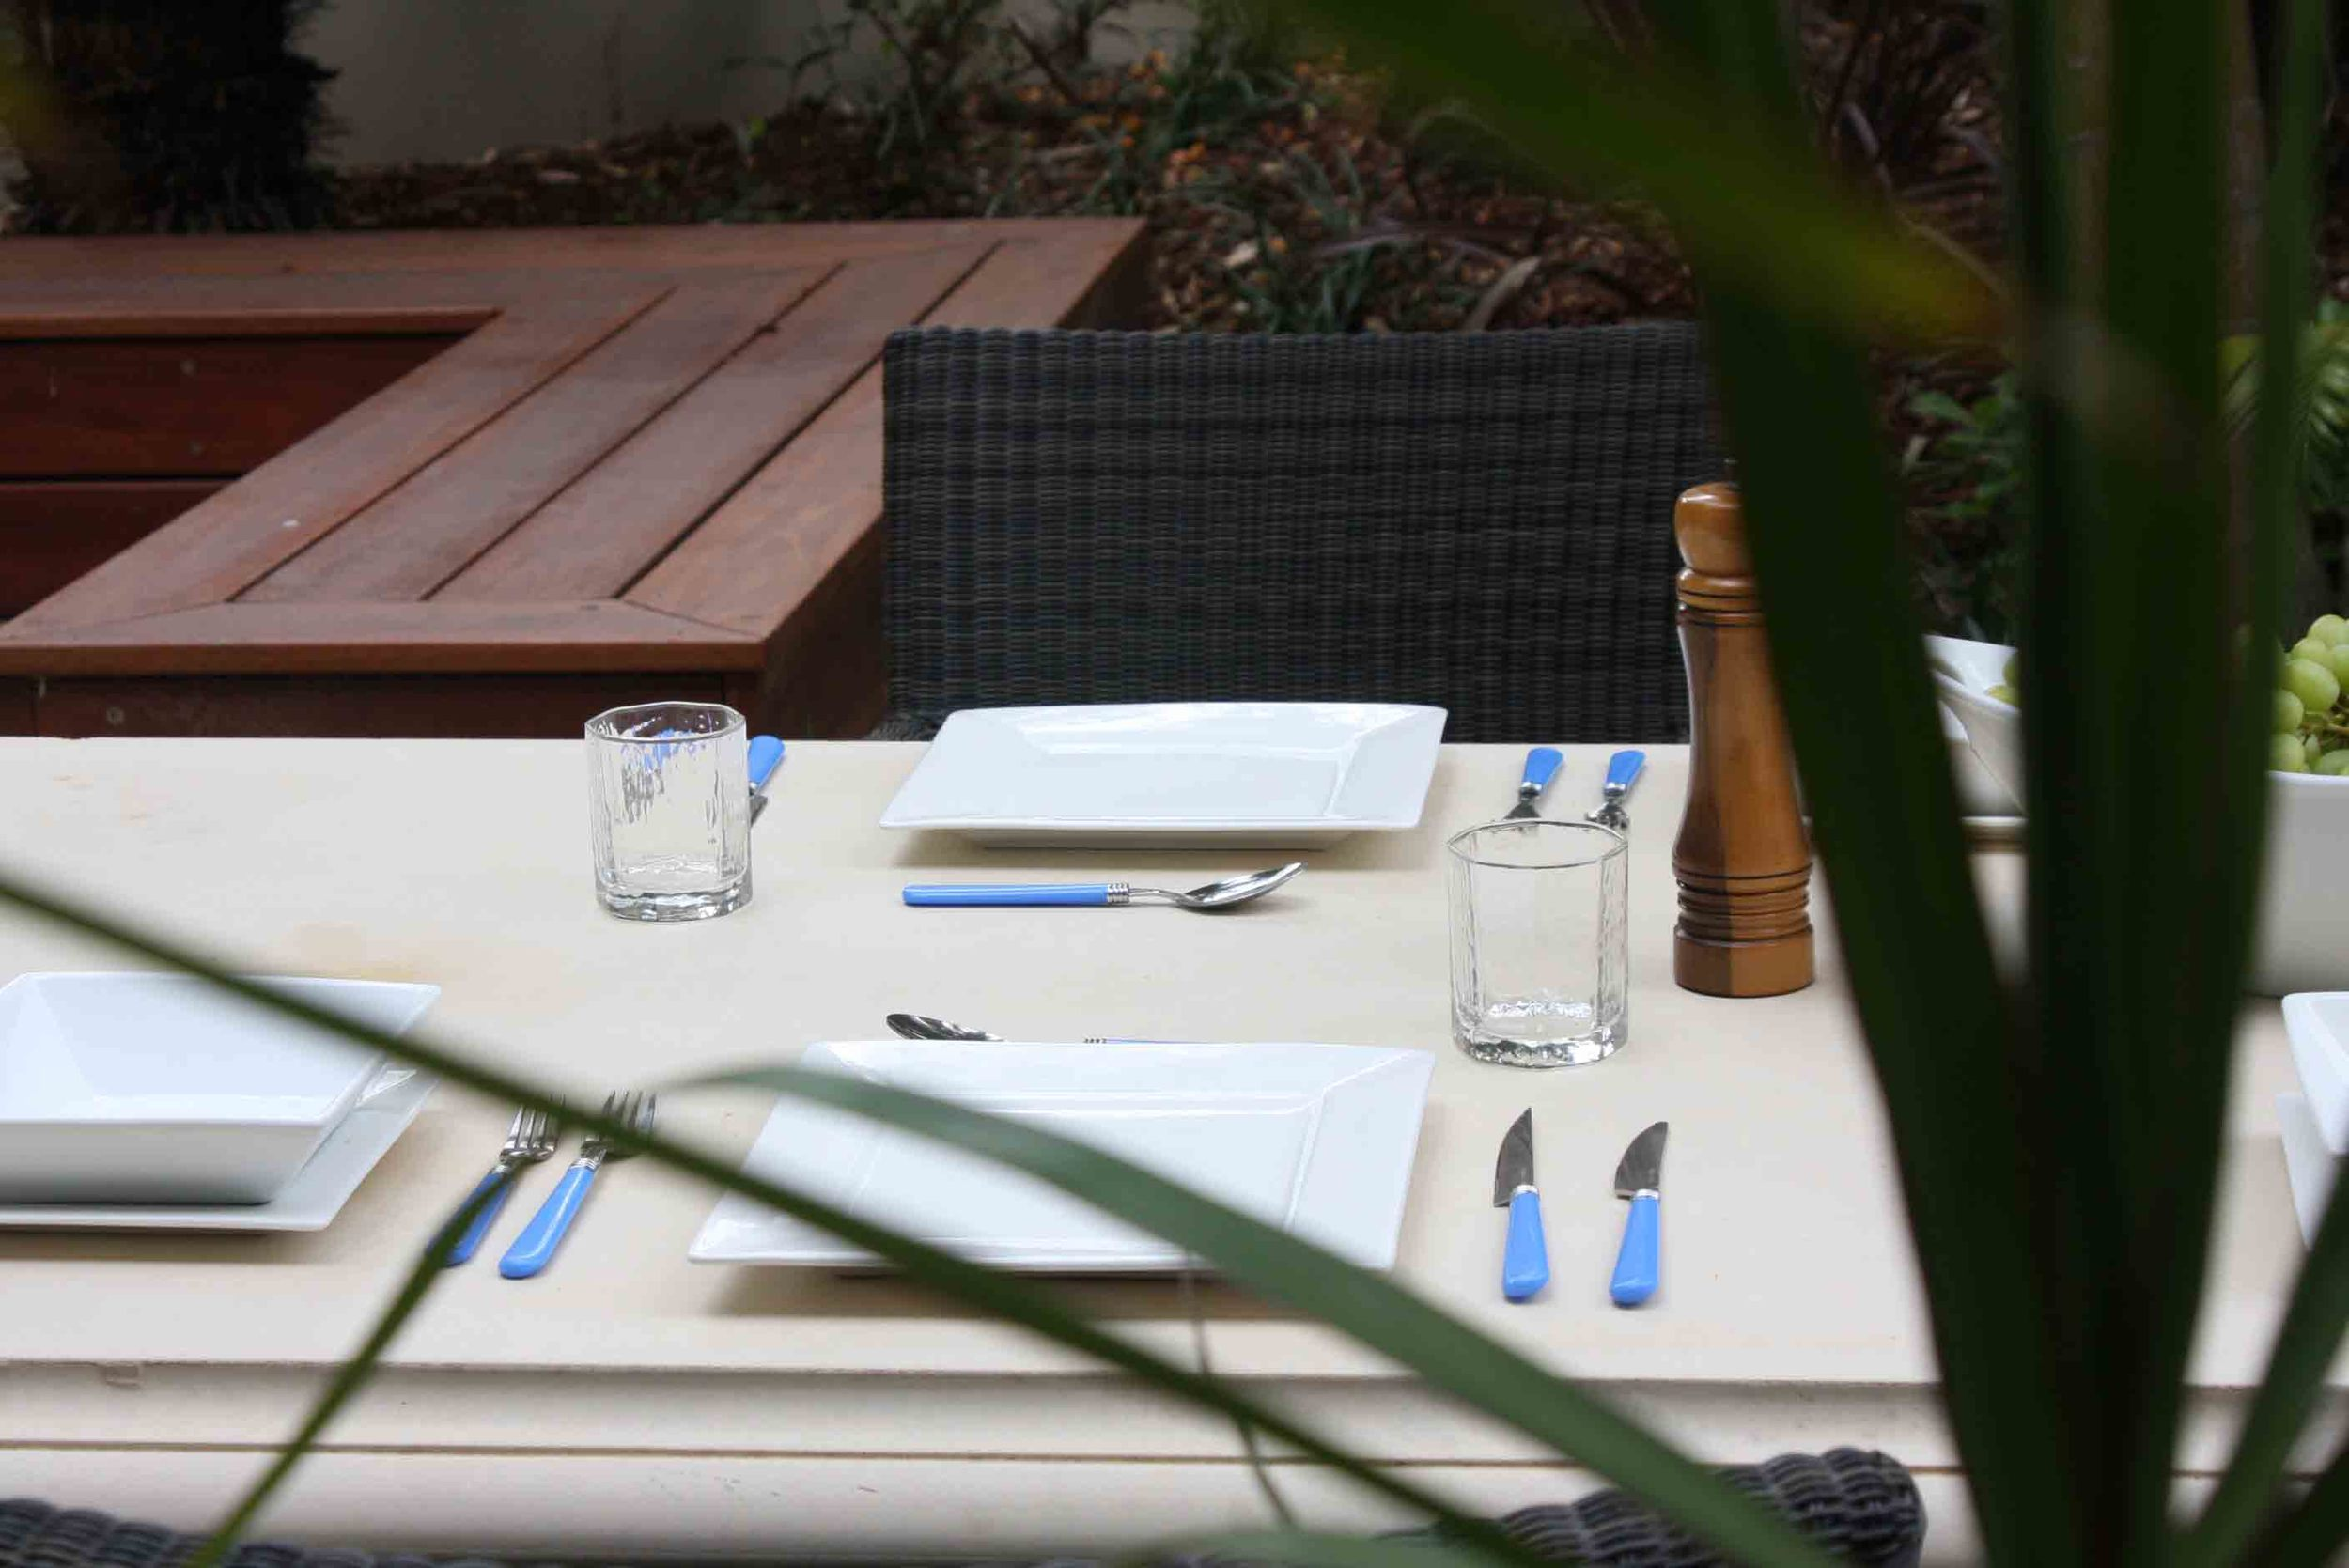 table setting from house side lo res.jpg